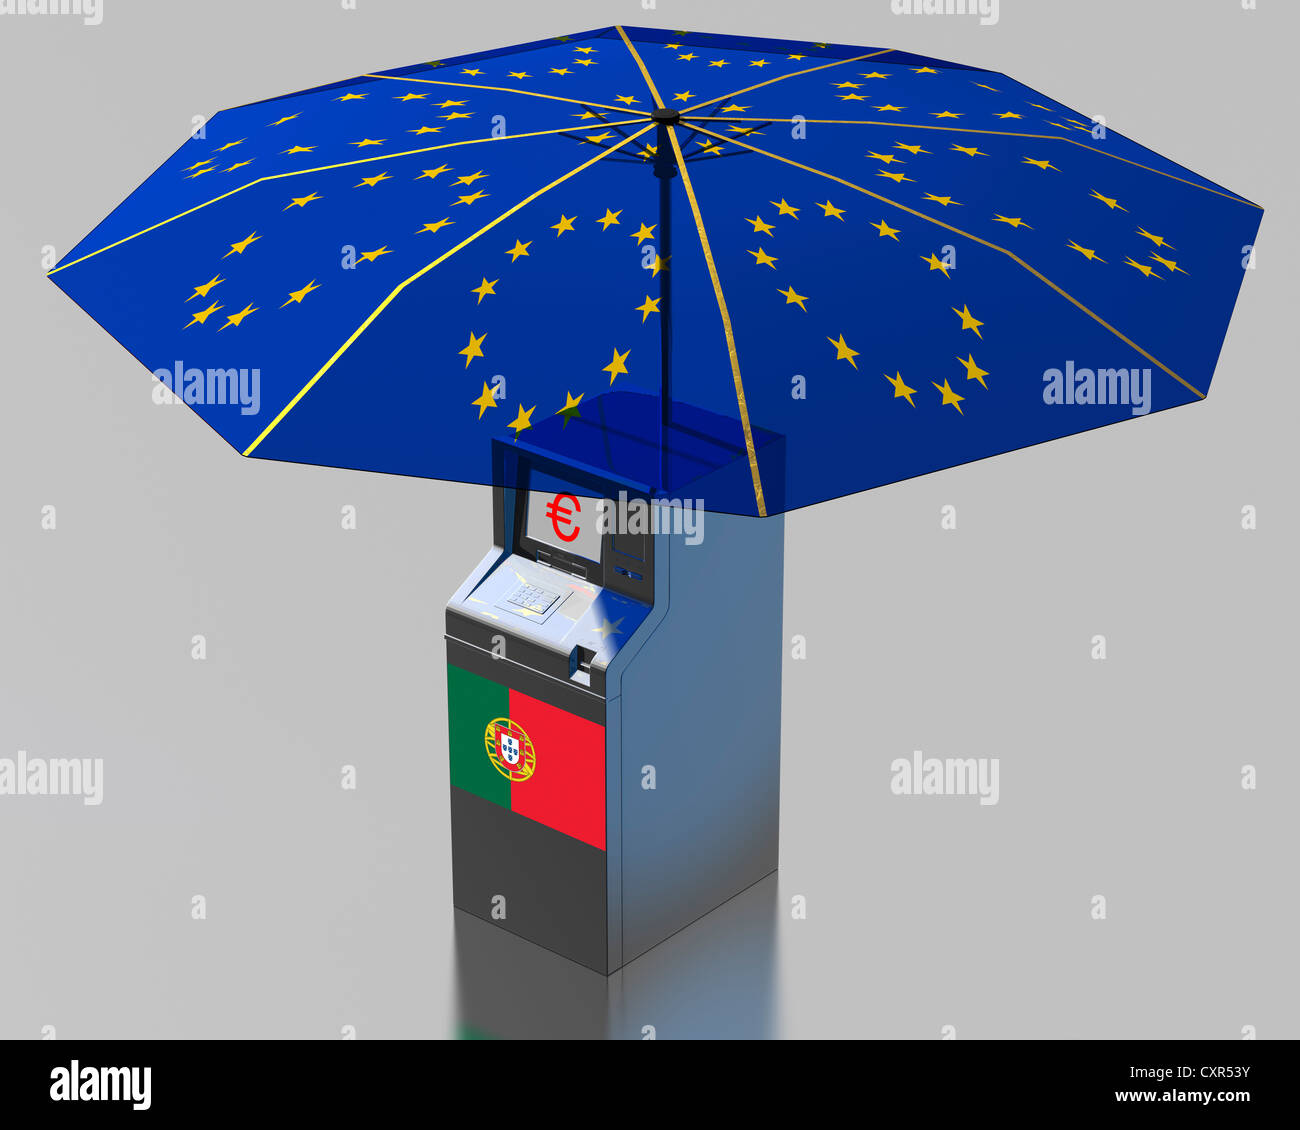 ATM with a Portugese flag under an umbrella with the stars of the EU, symbolic image for the euro rescue package - Stock Image